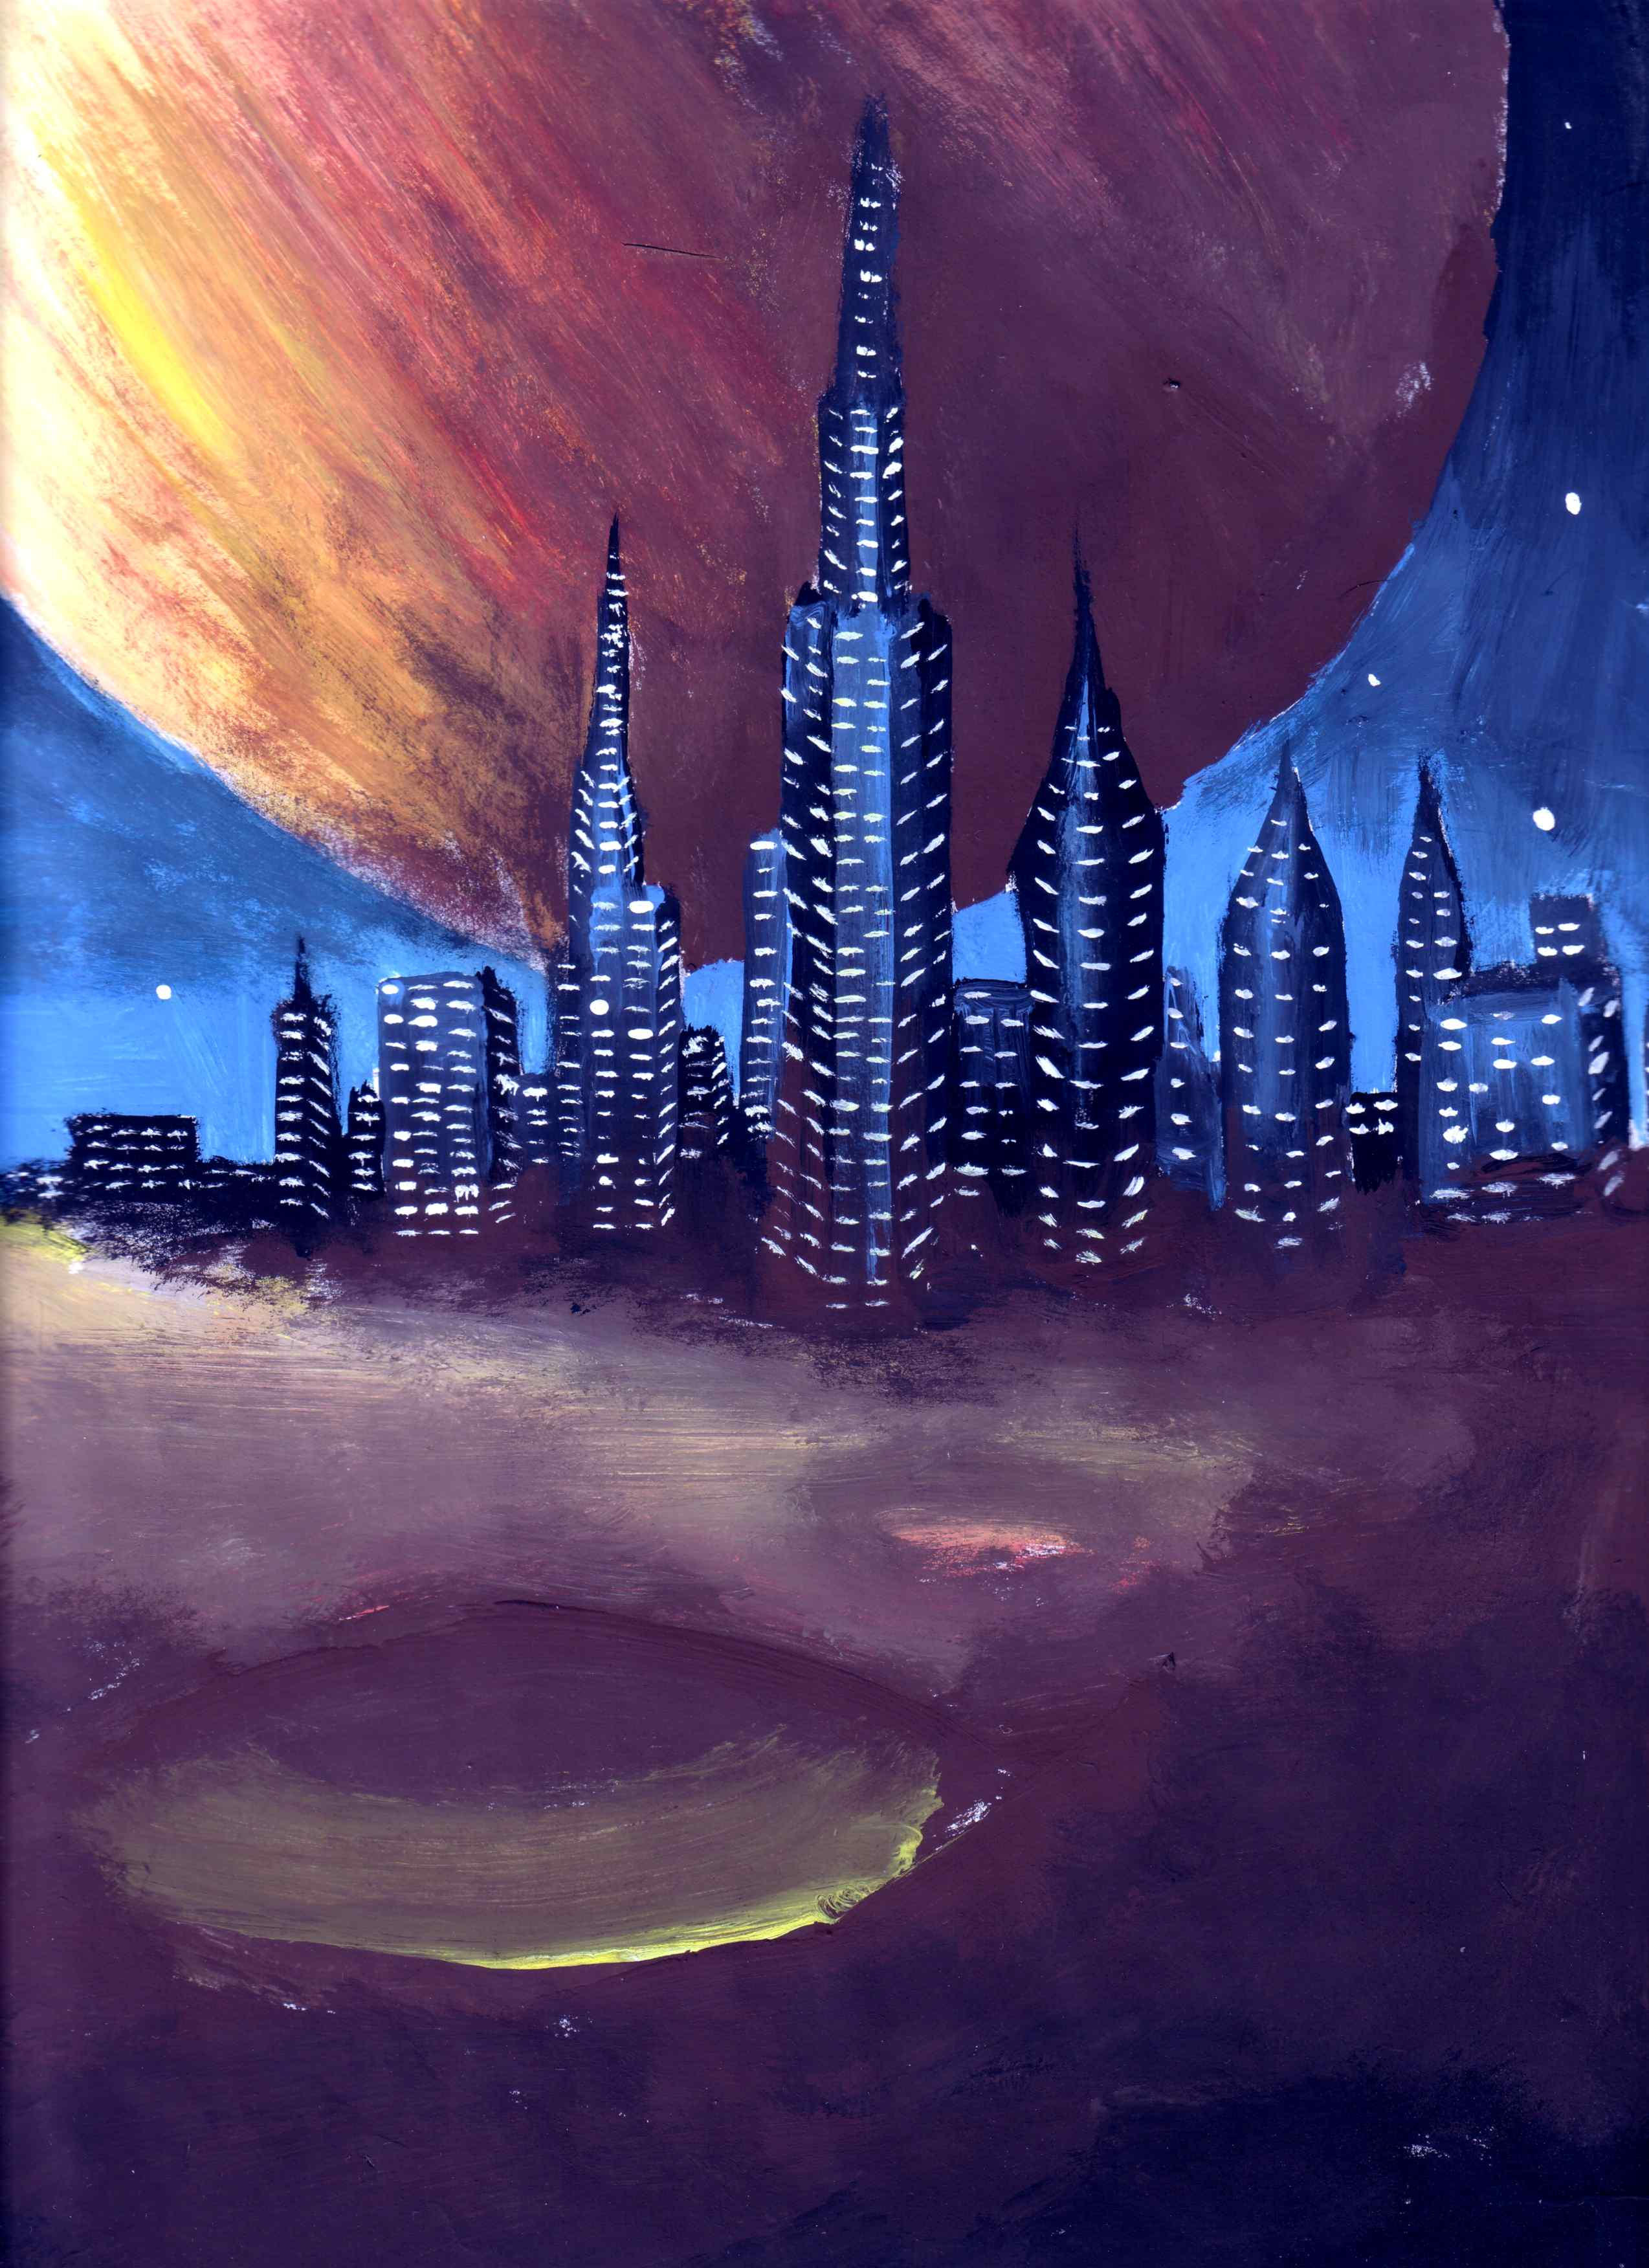 paintings planets and cities - photo #8